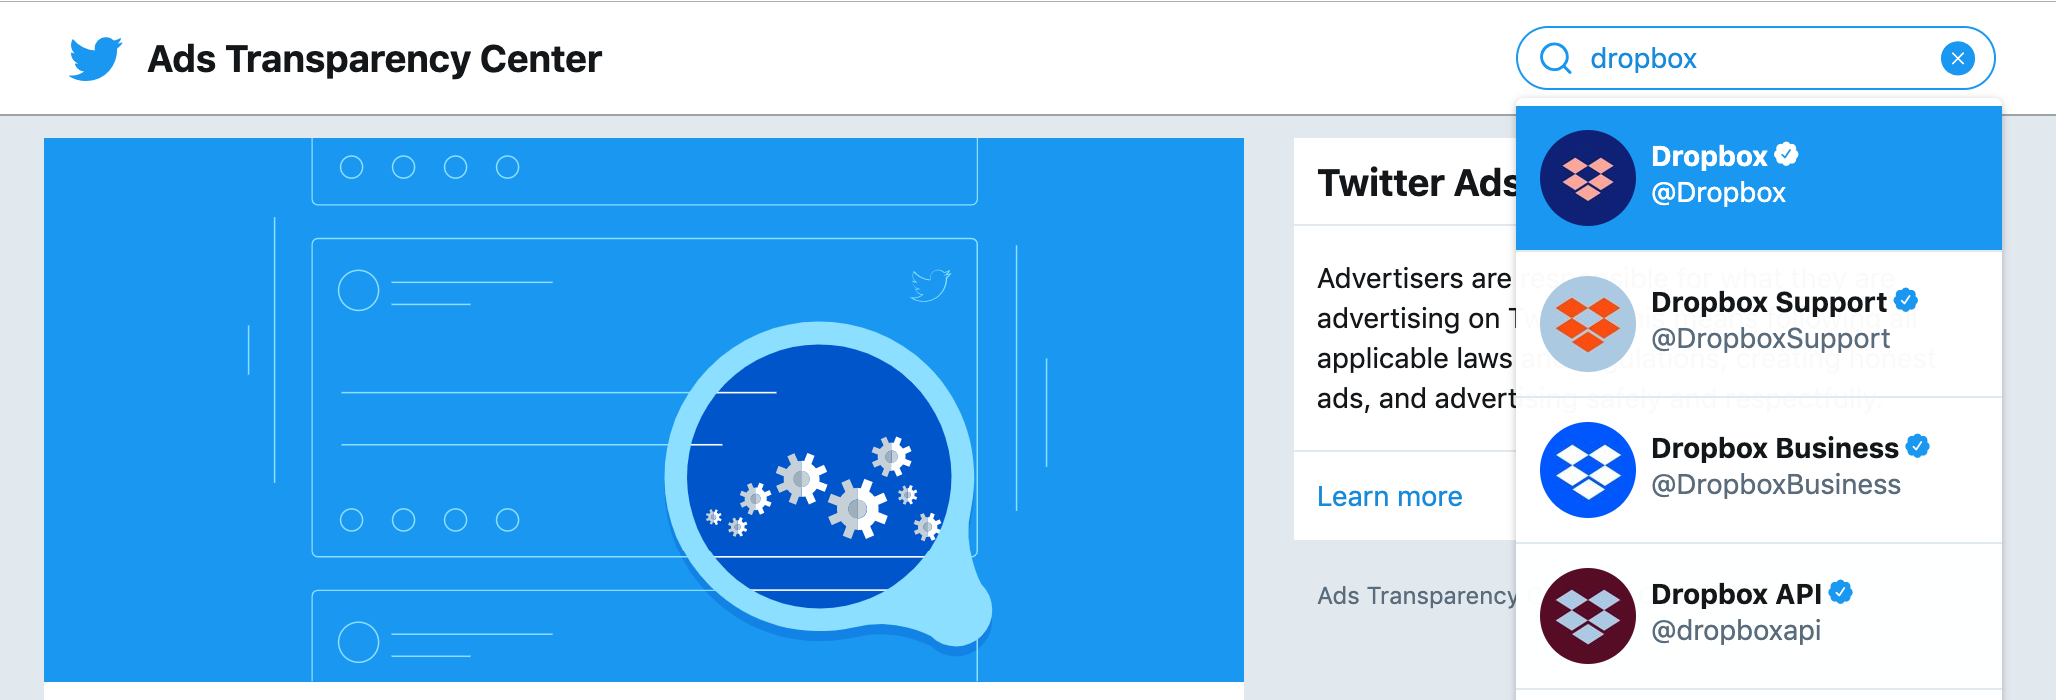 Twitter Ads Transparency Center search